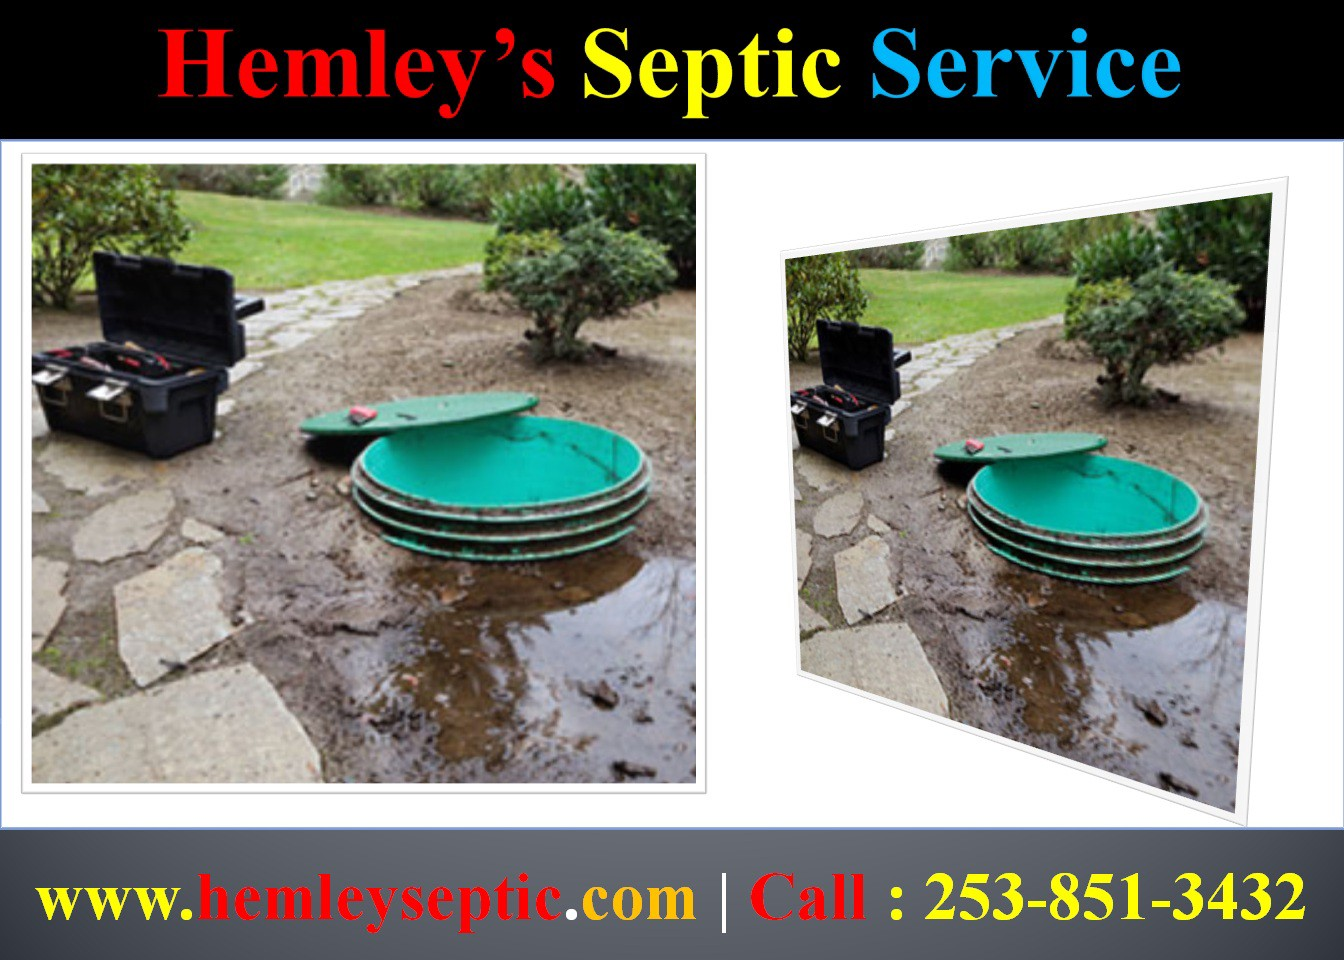 septic tank maintenance septic system services hemleys septic service - Septic Tank Maintenance